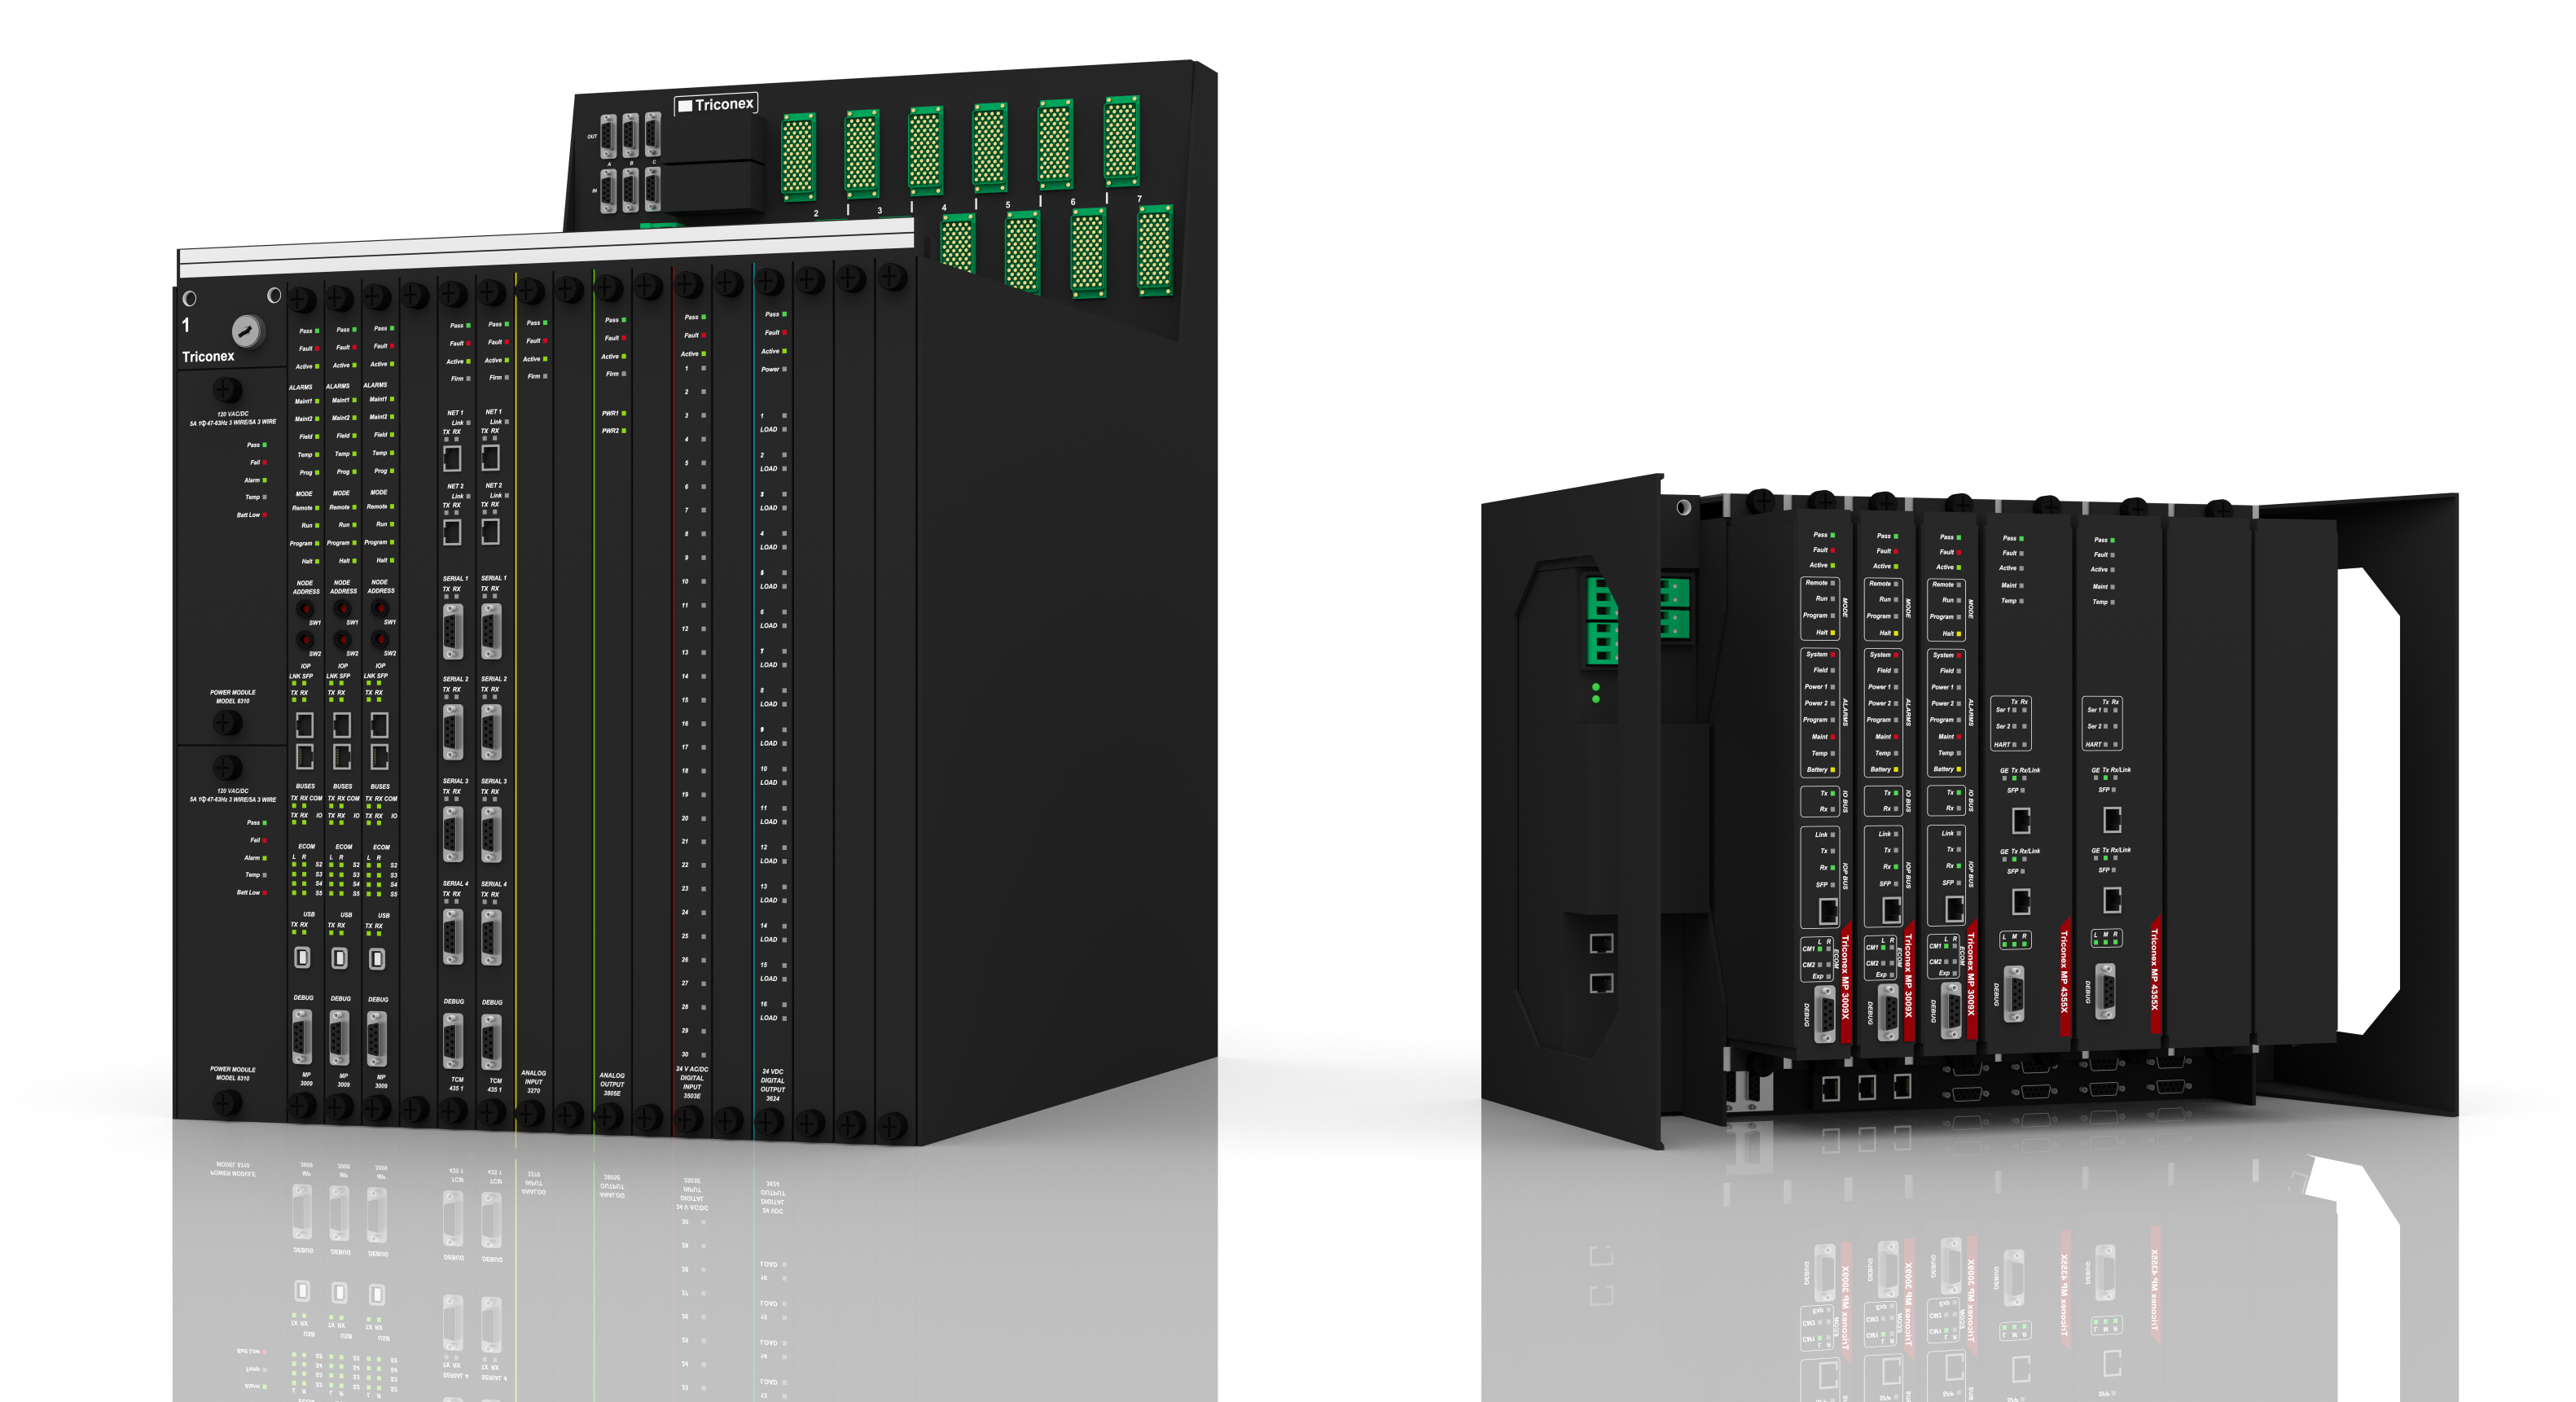 Schneider Electric releases Tricon CX compact safety system to